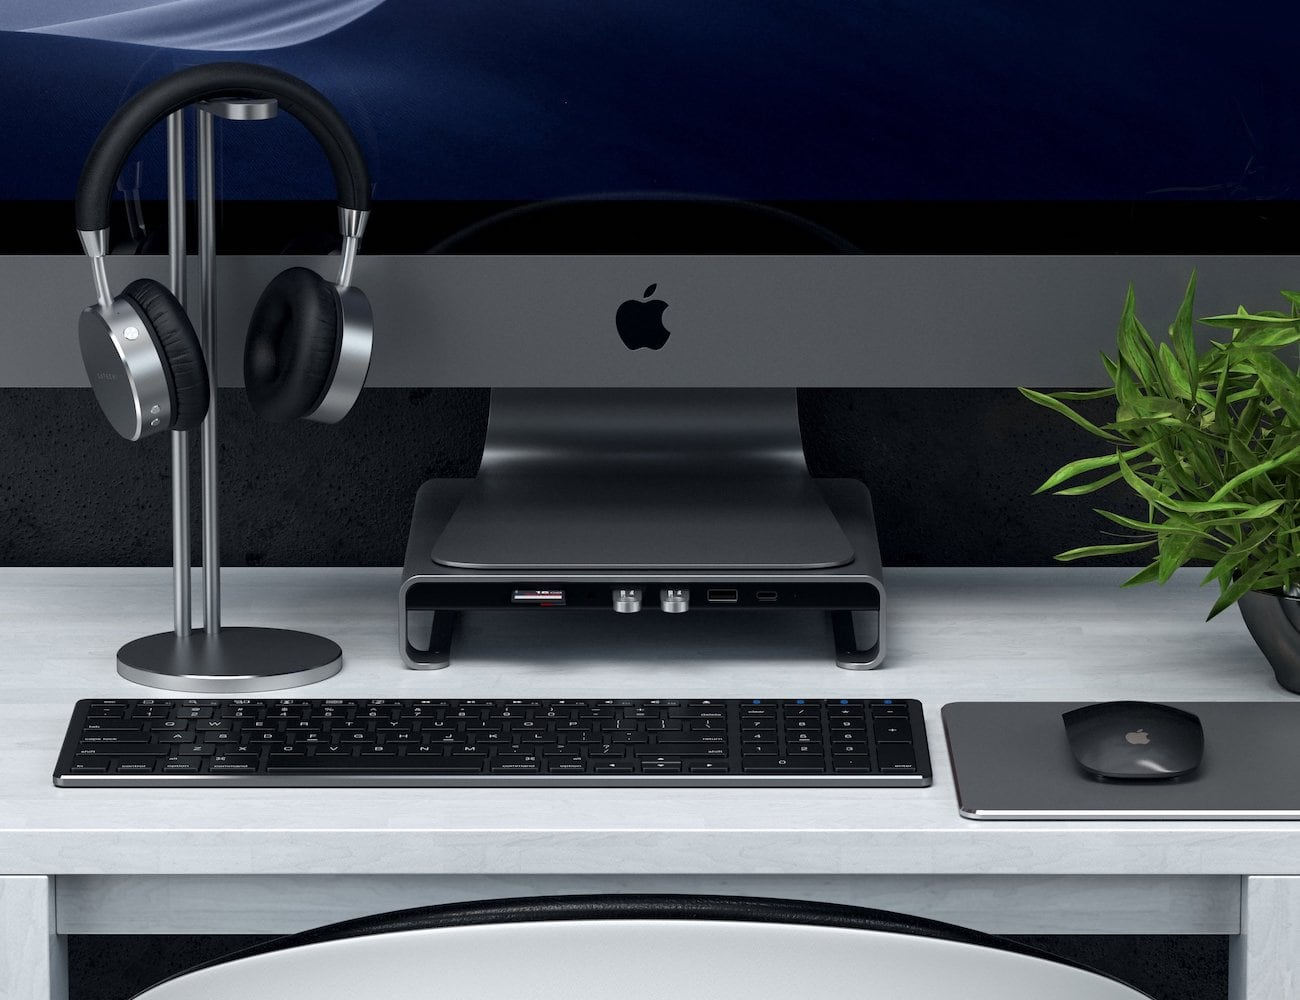 Satechi Type-C Aluminum iMac Monitor Stand Hub gives you total access